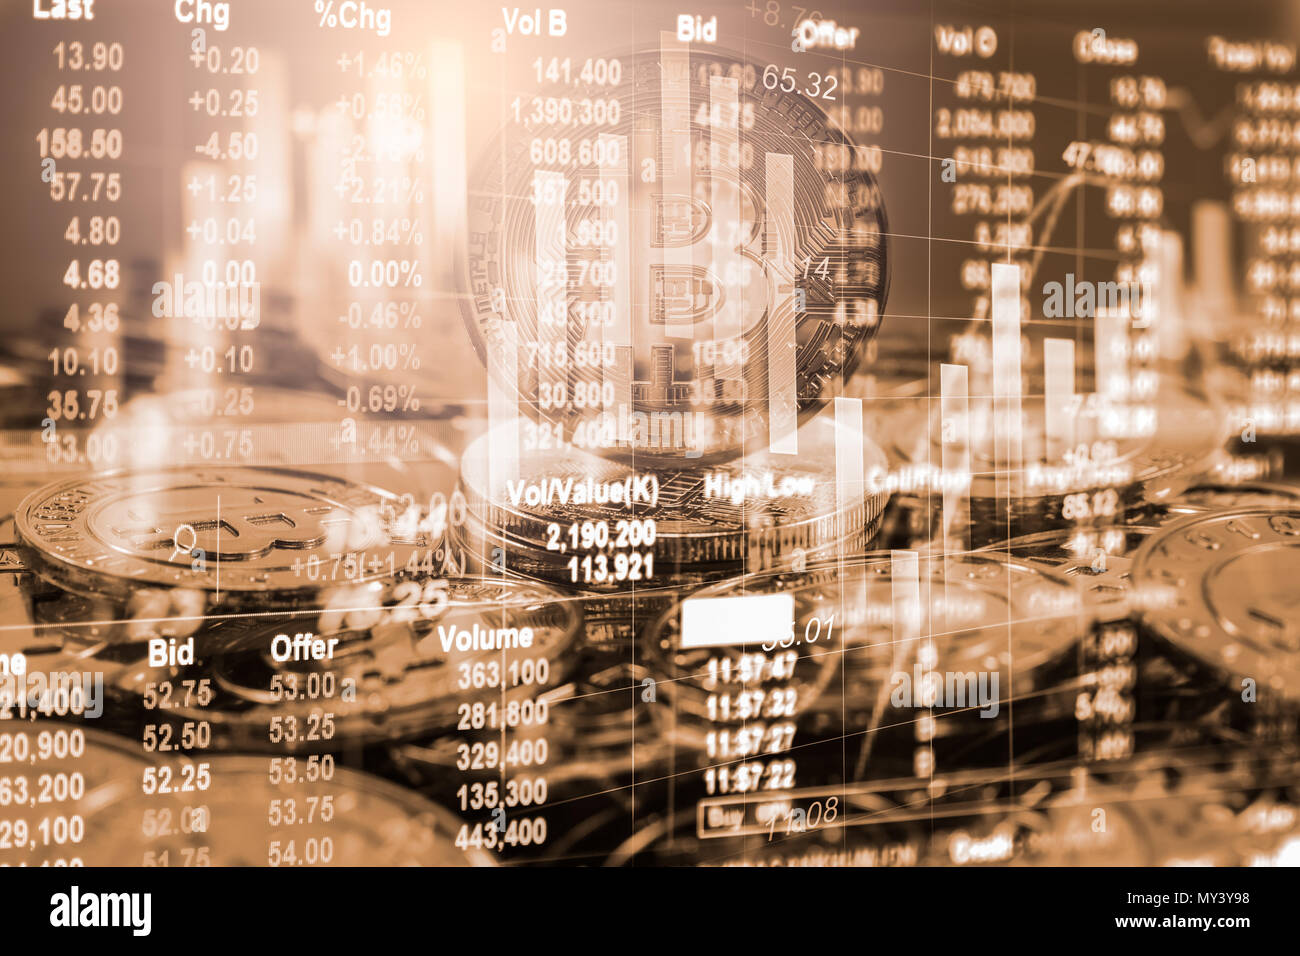 Modern way of exchange. Bitcoin is convenient payment in global economy market. Virtual digital currency and financial investment trade concept. Abstr - Stock Image